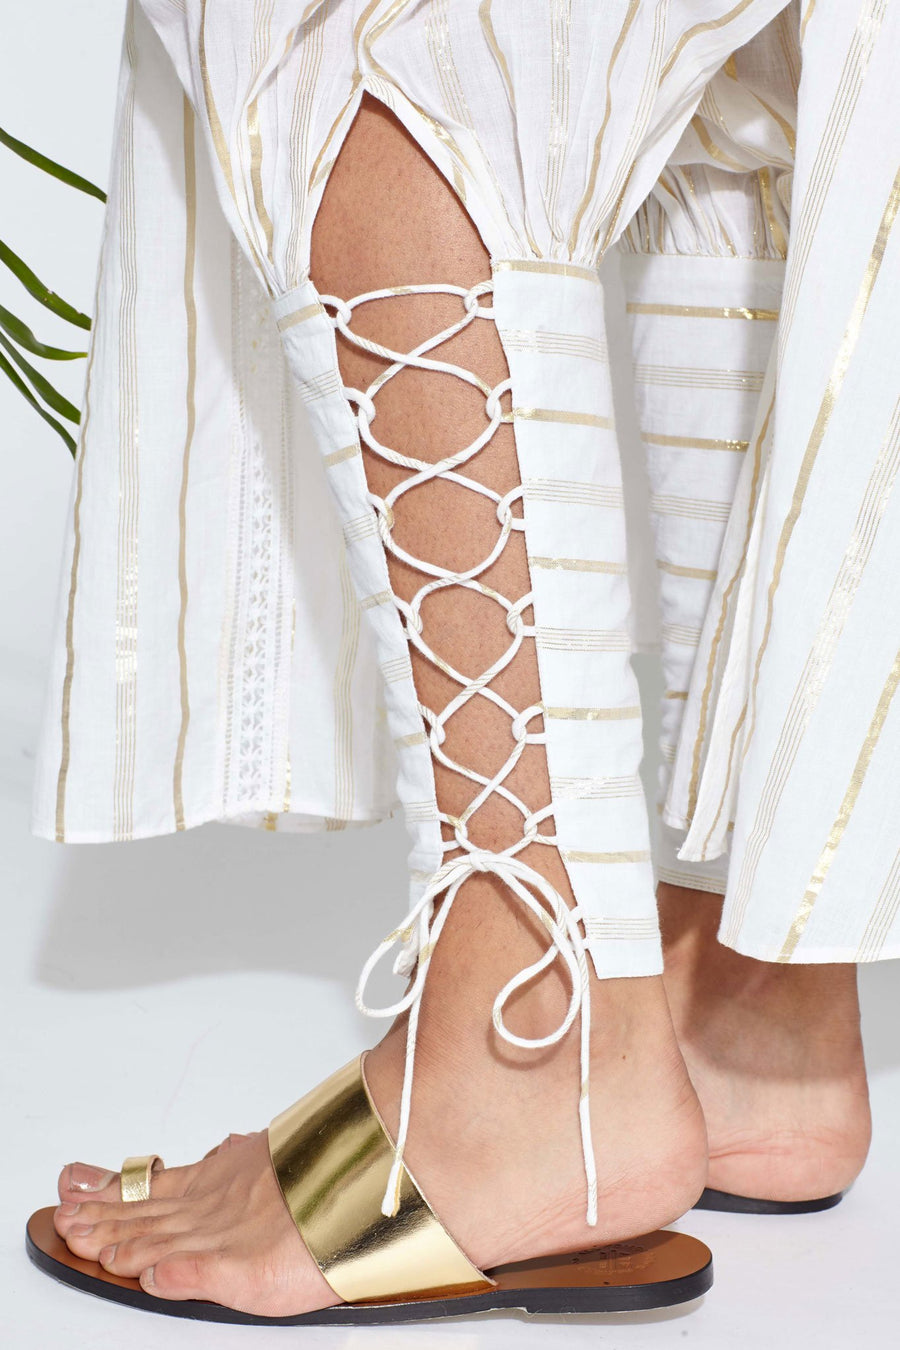 This is a detail photo of white colored pants with metallic gold stripes and a lace up detail from the ankle to calf on the pant leg. Model wears gold sandals.